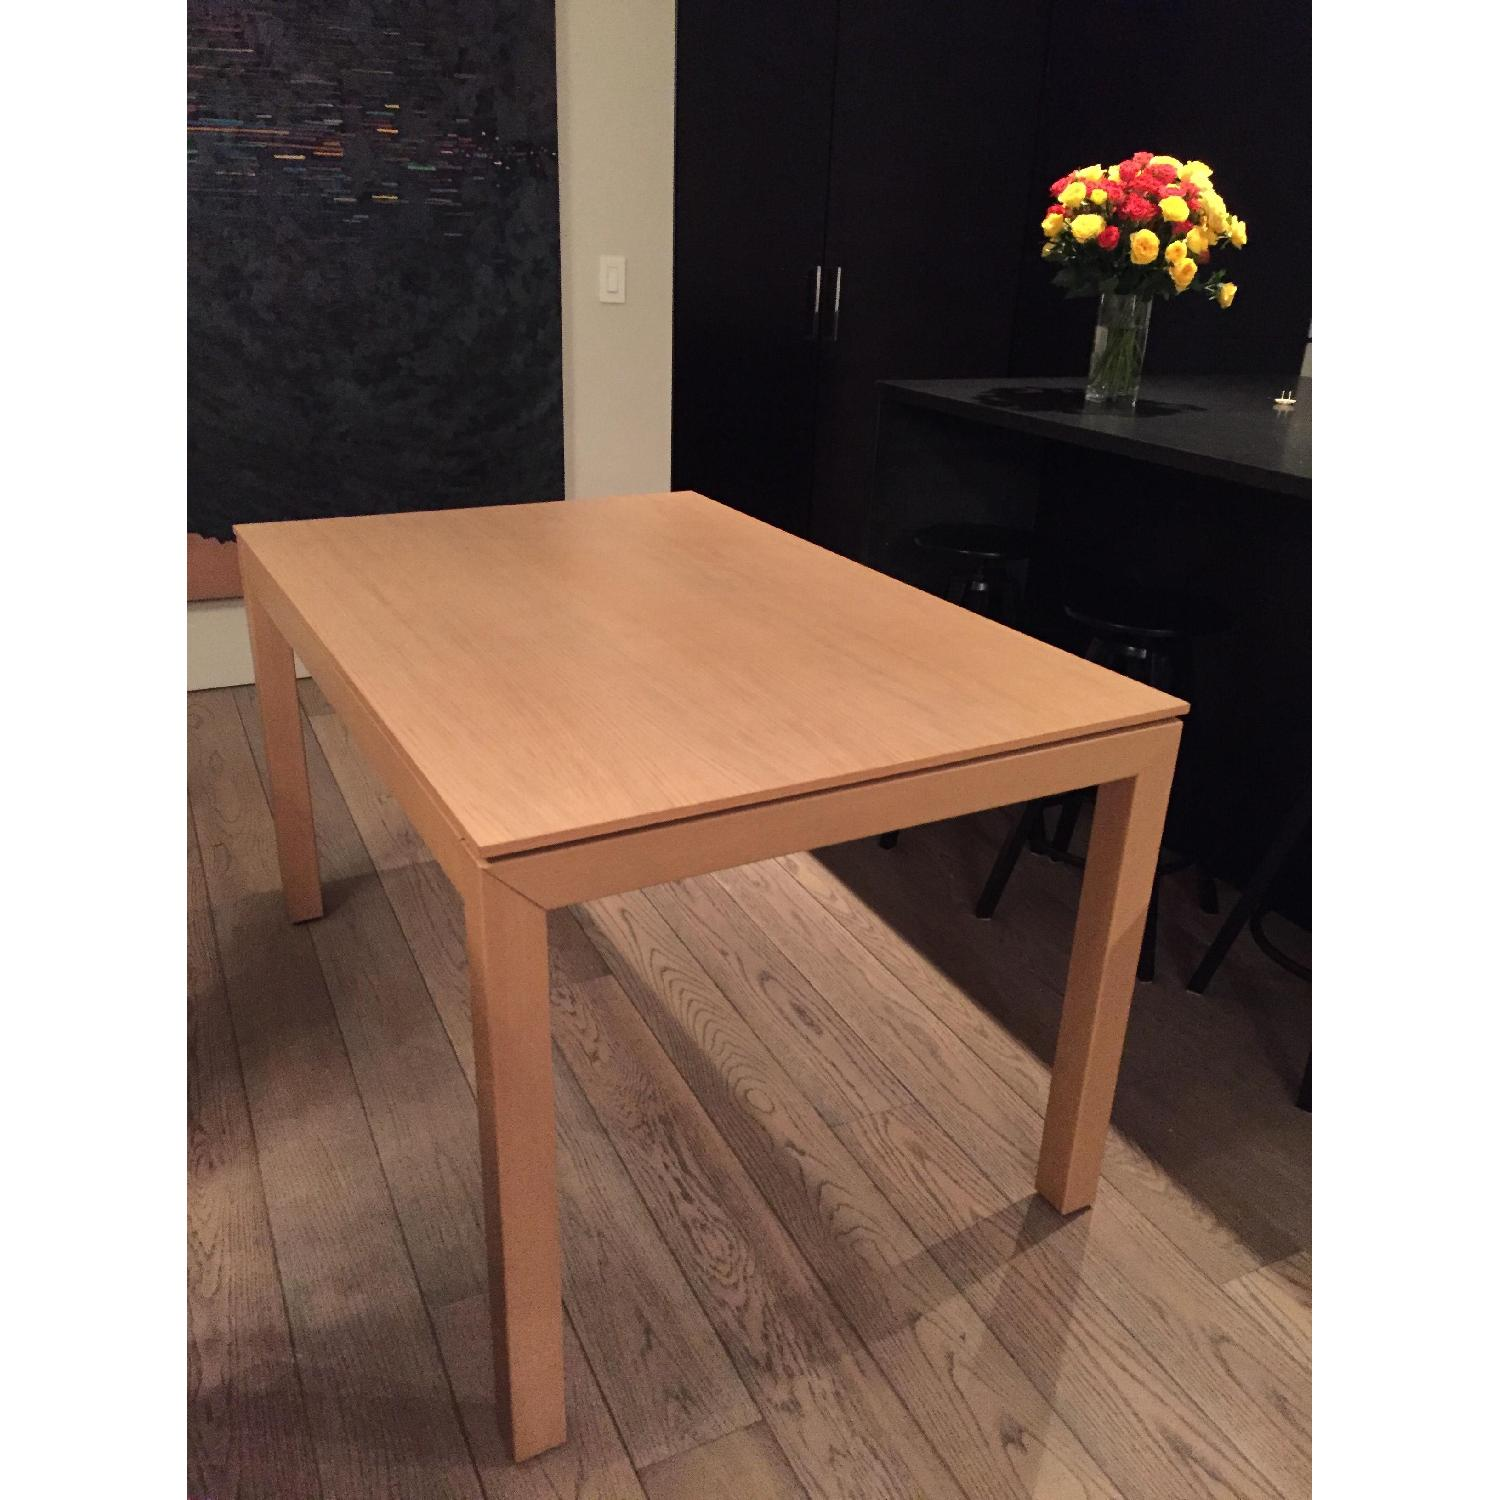 Calligaris Expandable Table in Birch - image-1